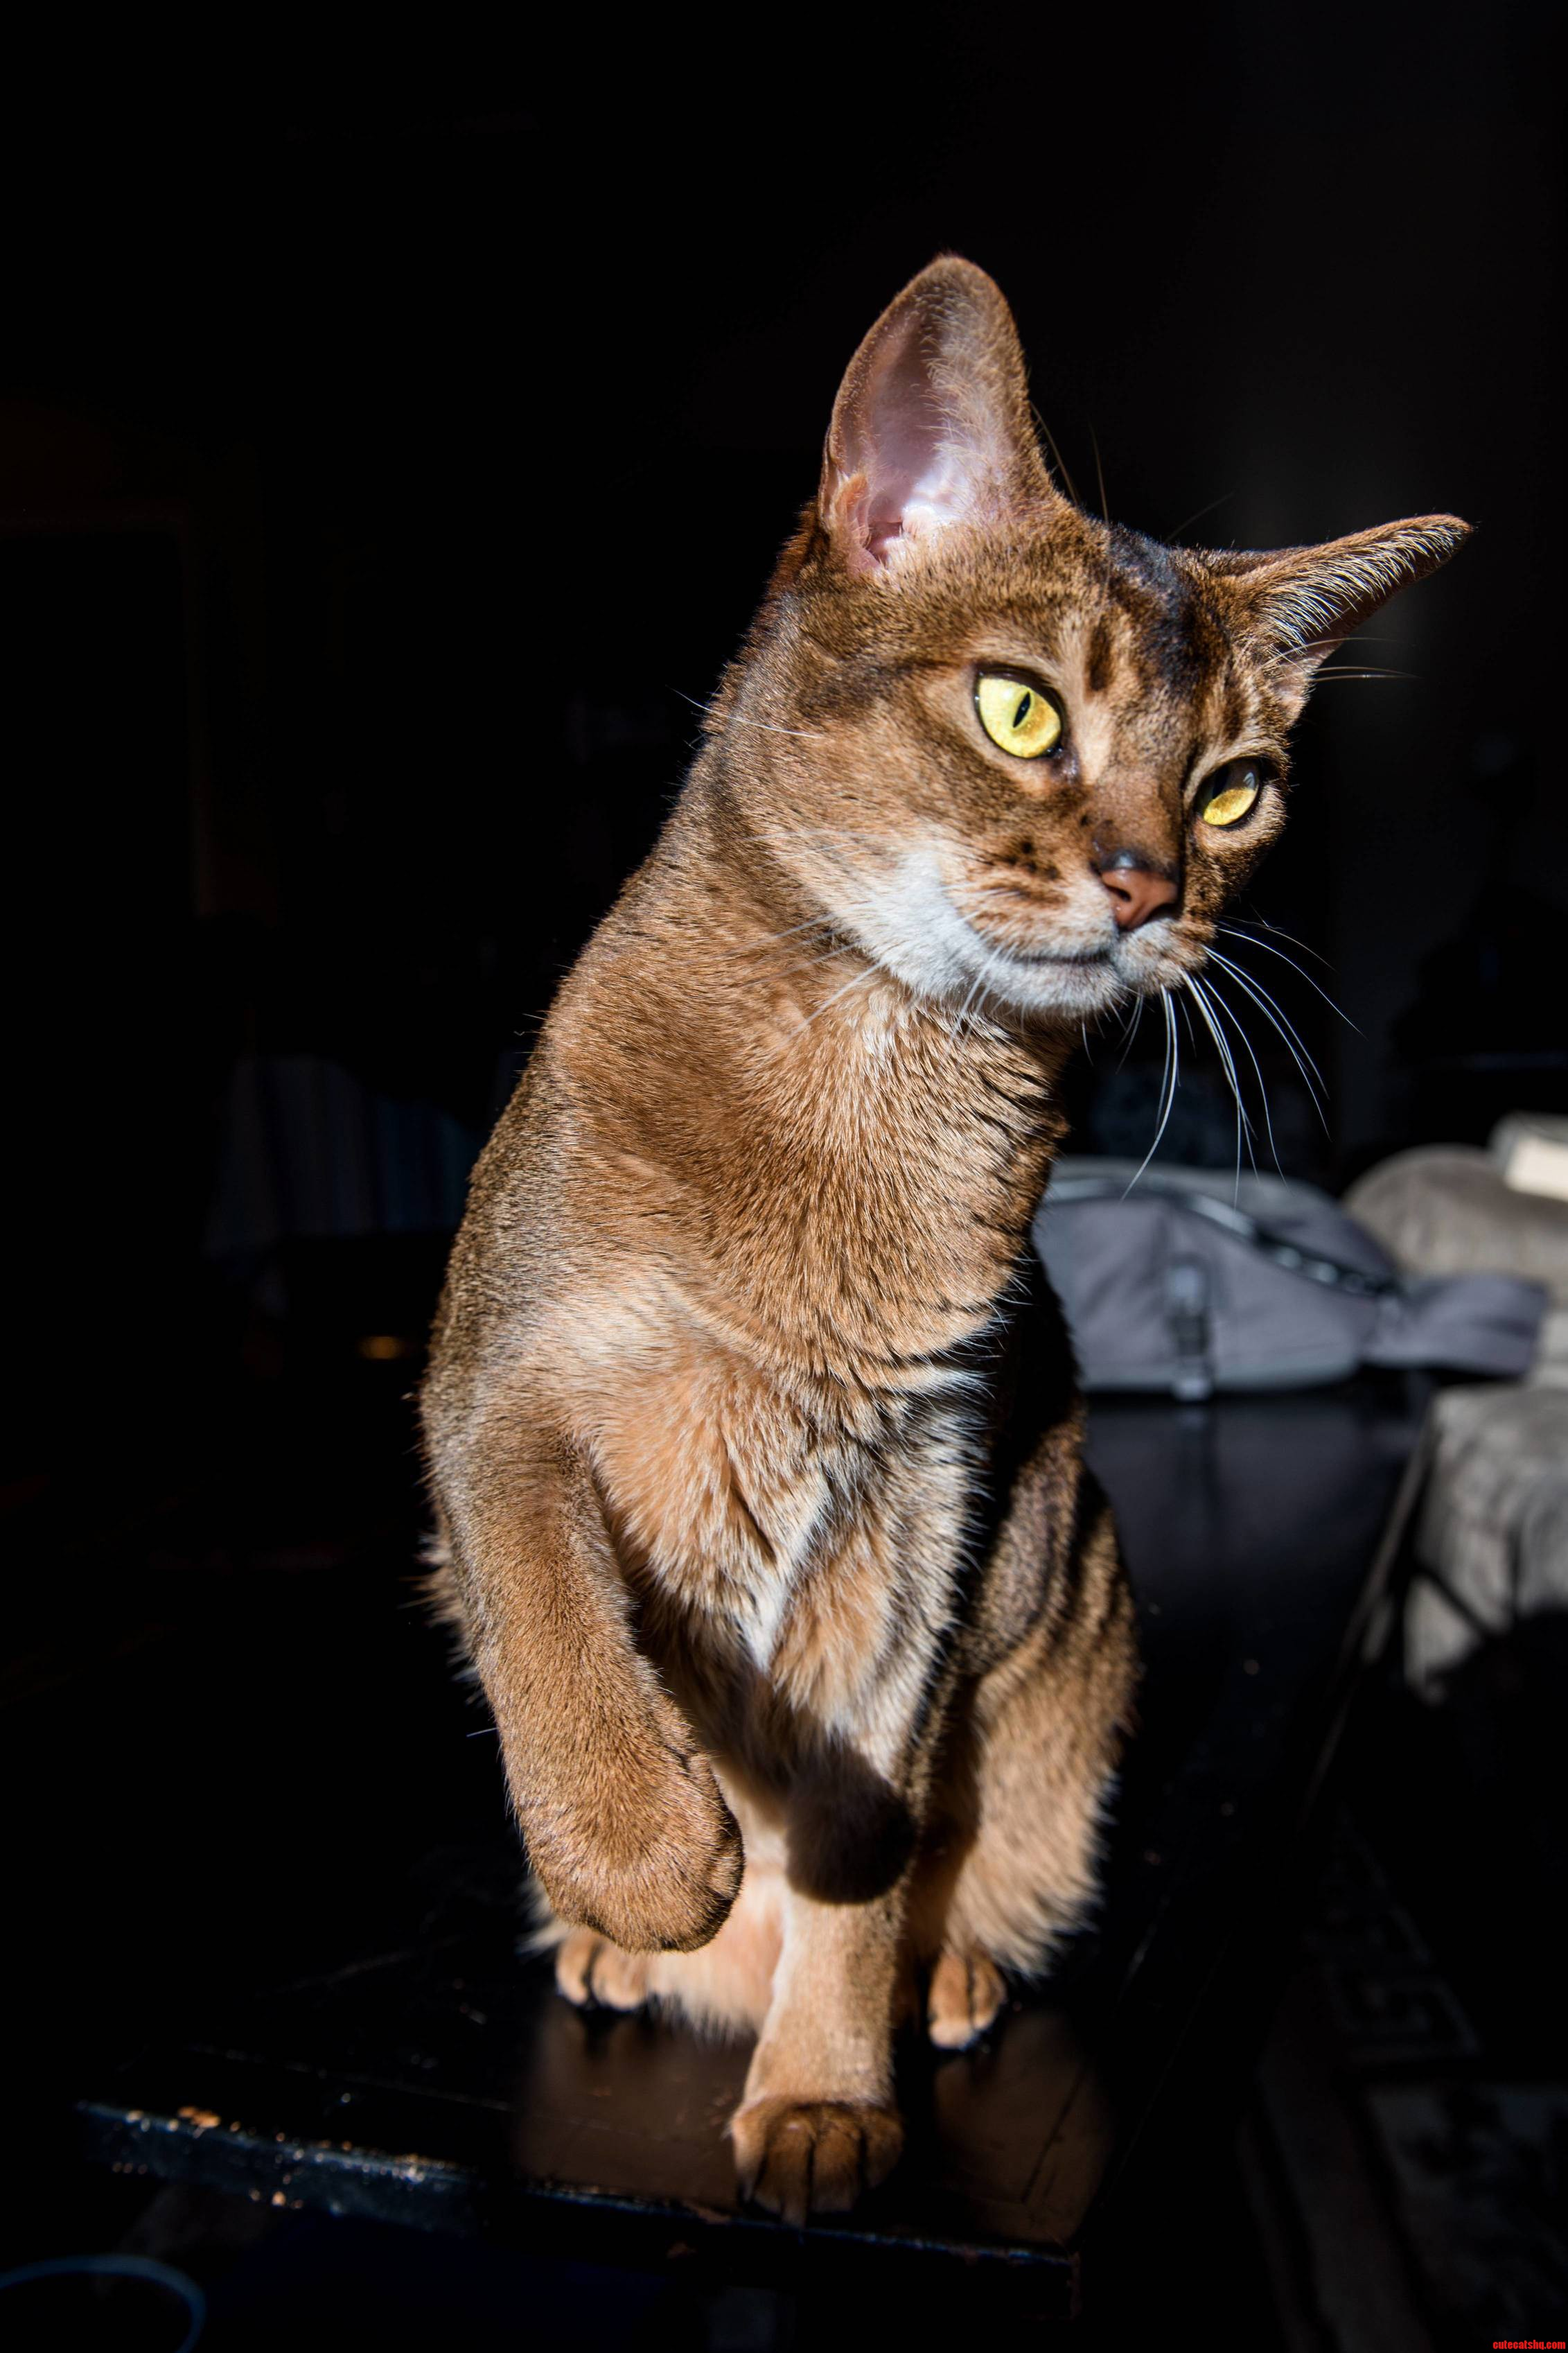 Leia the abyssinian helping me test my new camera